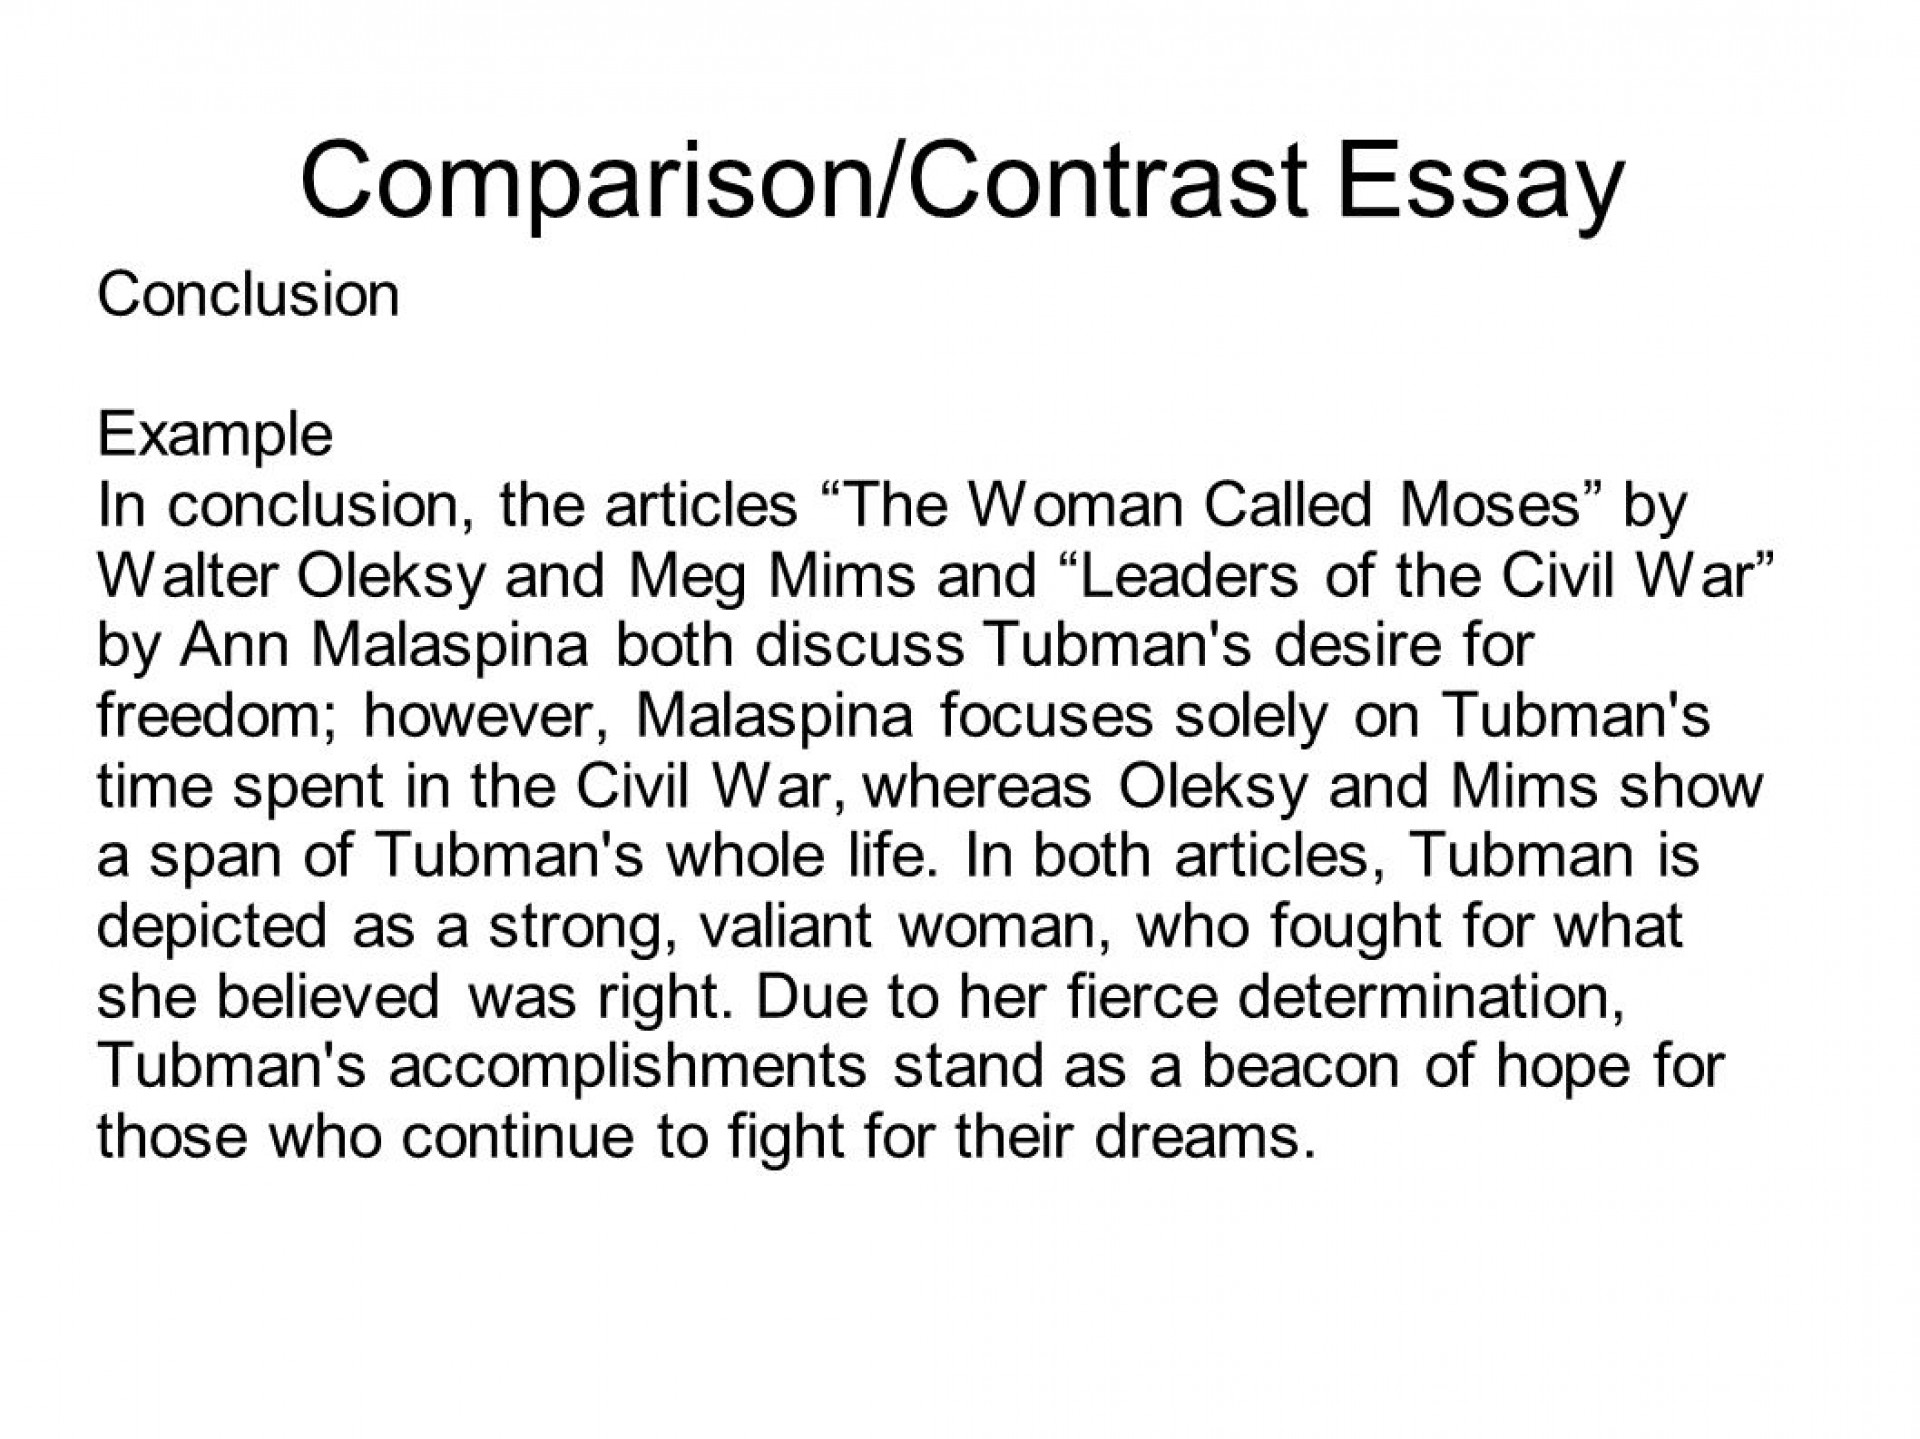 010 In Conclusion Essay Sli How To Write Concluding Sentence For An Argumentative Persuasive Good Make Breathtaking A Compare And Contrast Paragraph Strong 1920